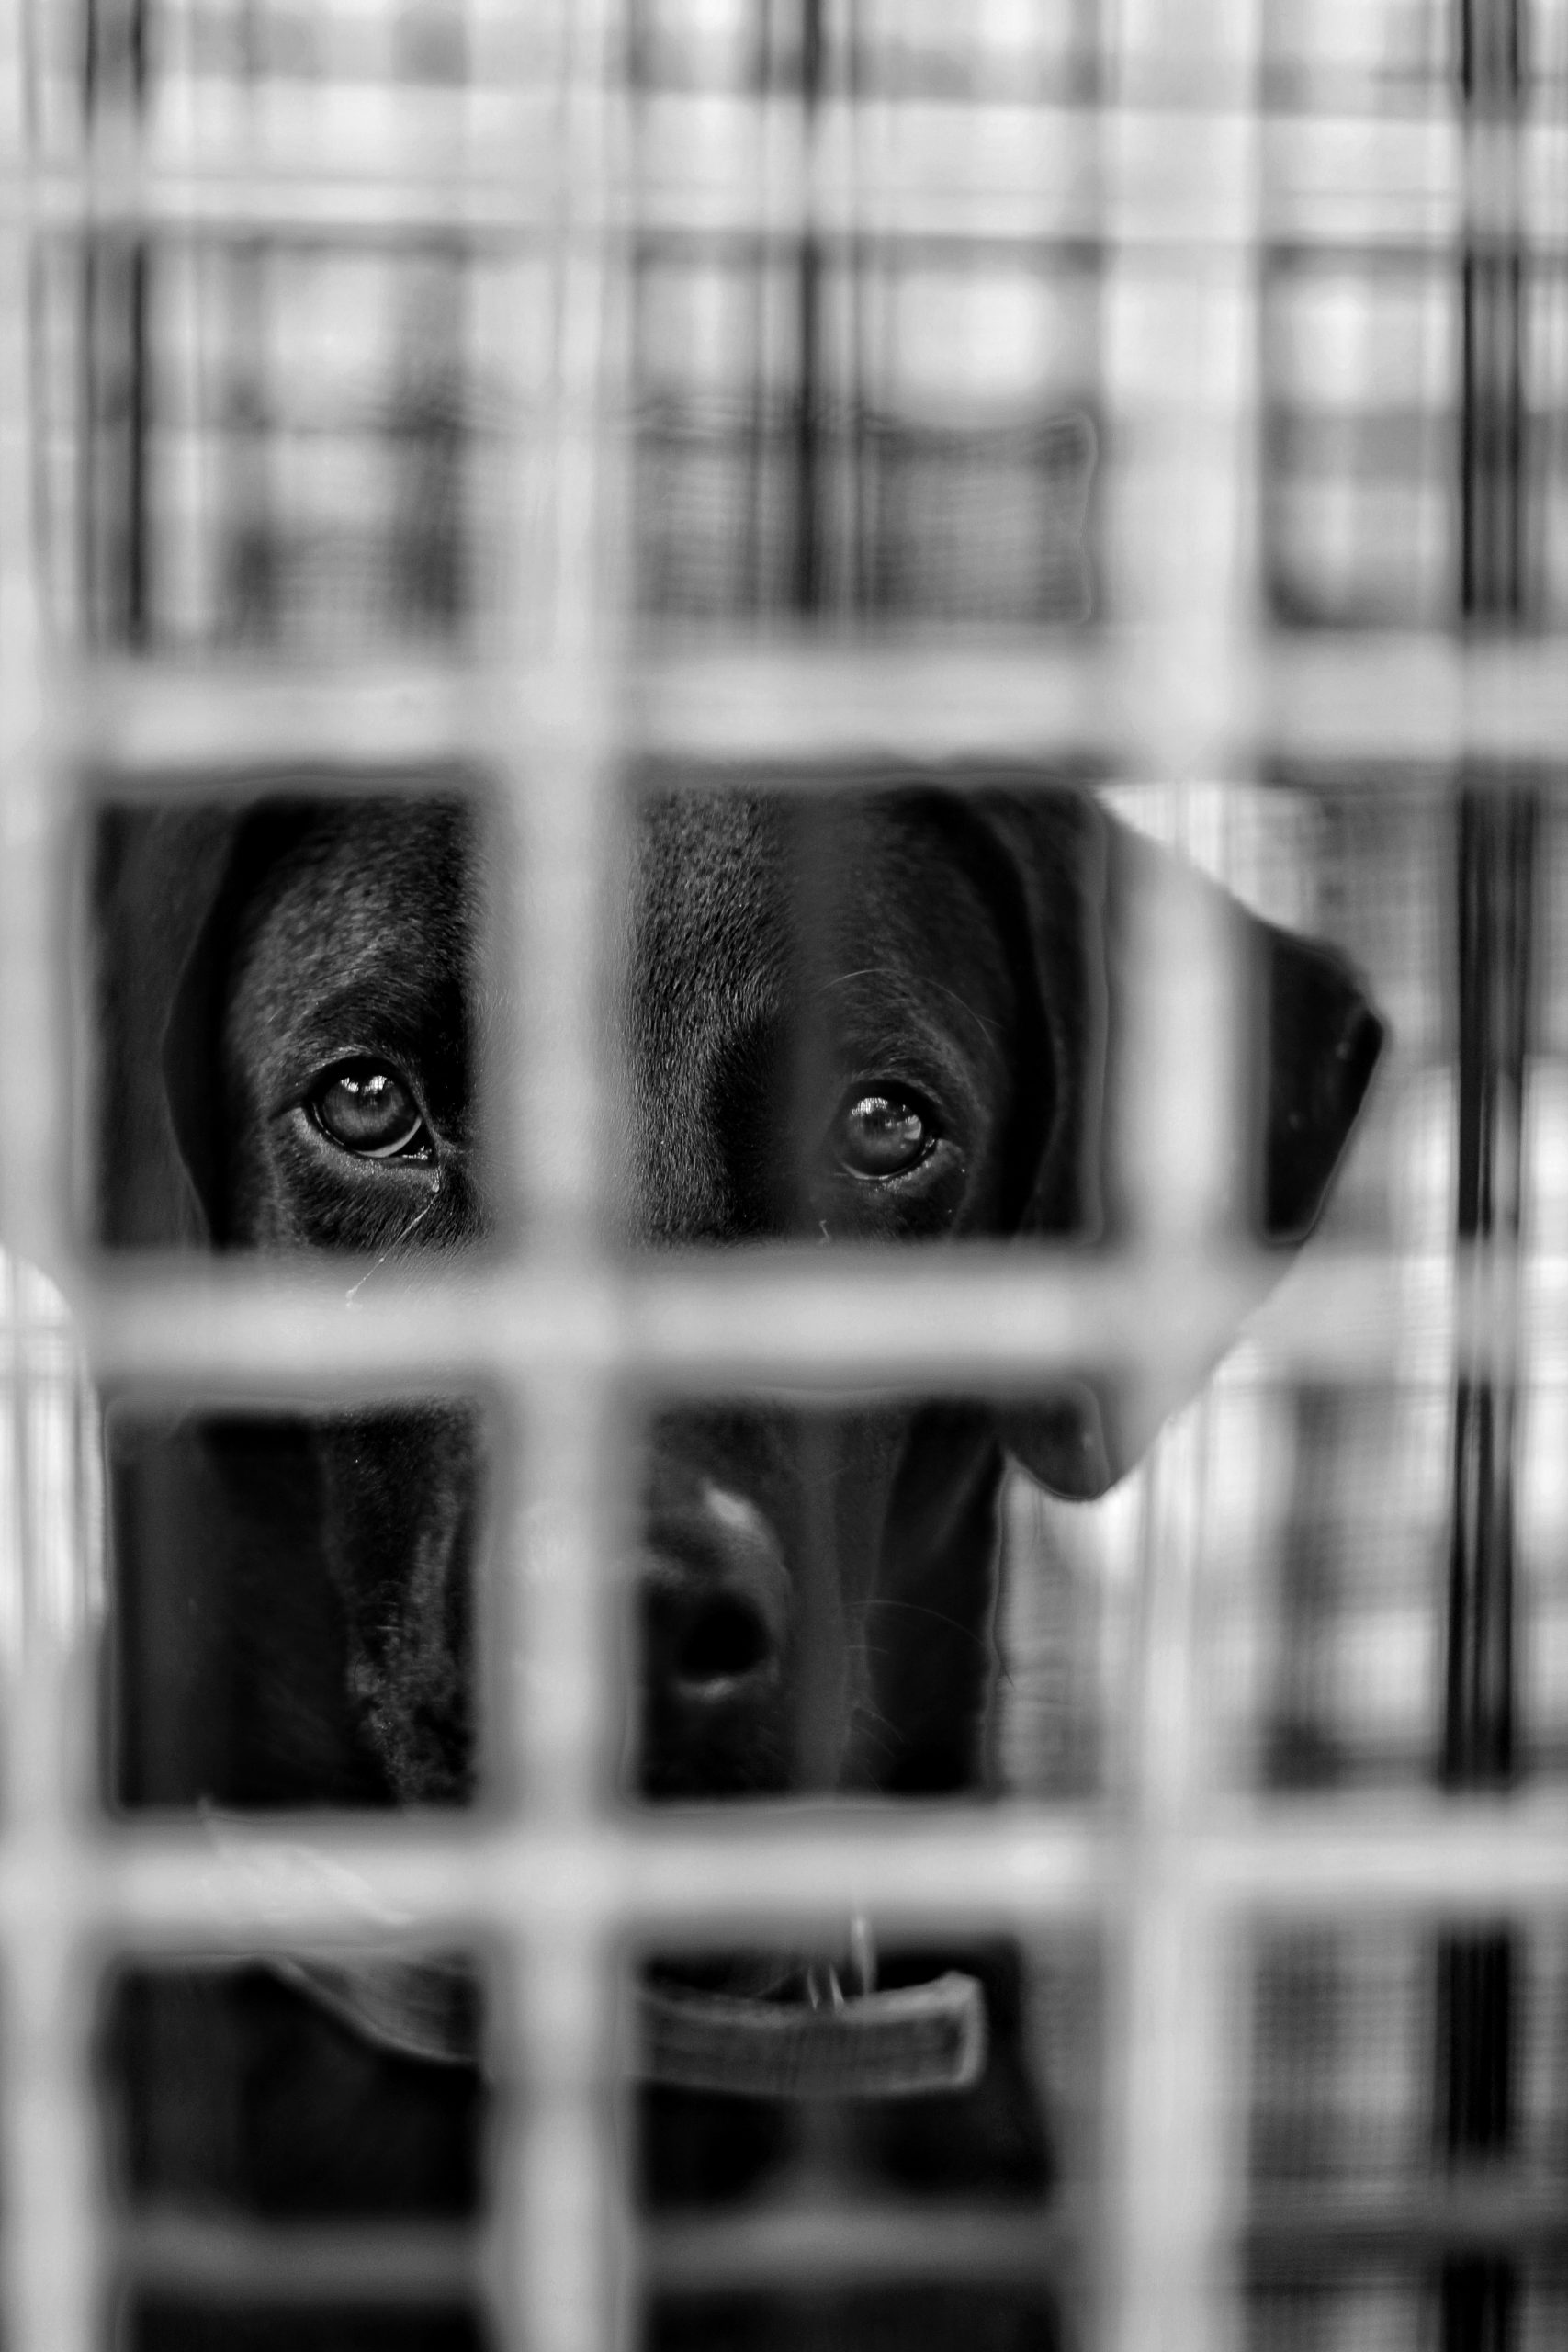 Dog behind fence in black and white